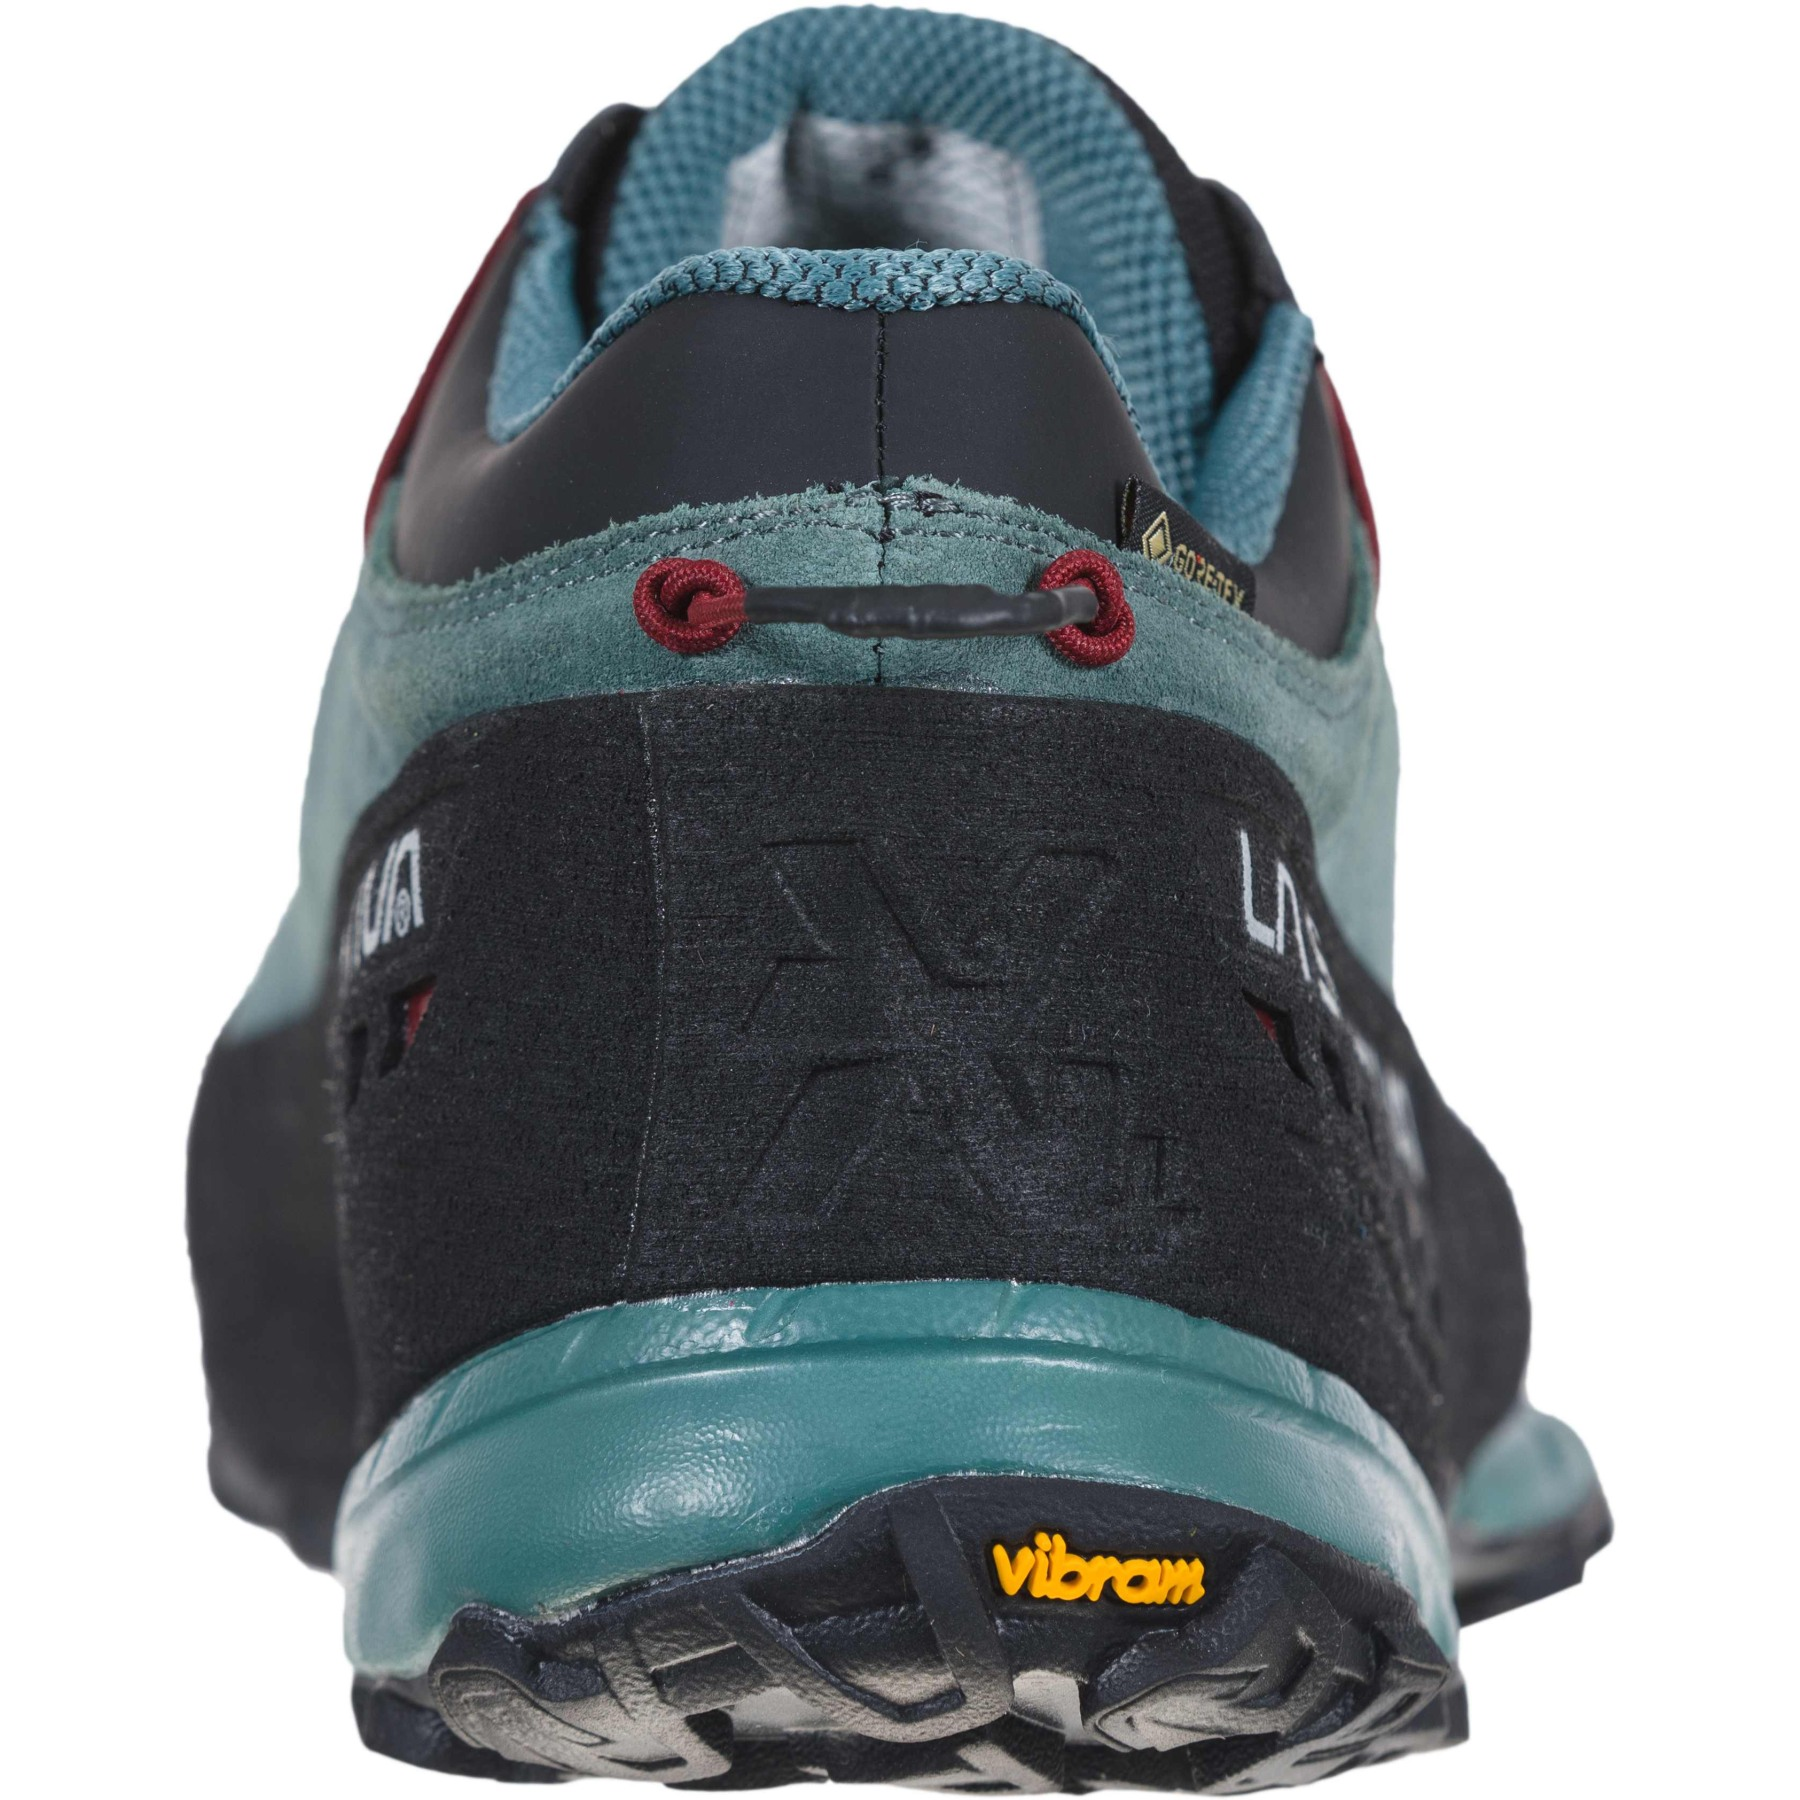 Image of La Sportiva TX4 GTX Approach Shoes - Pine/Chili